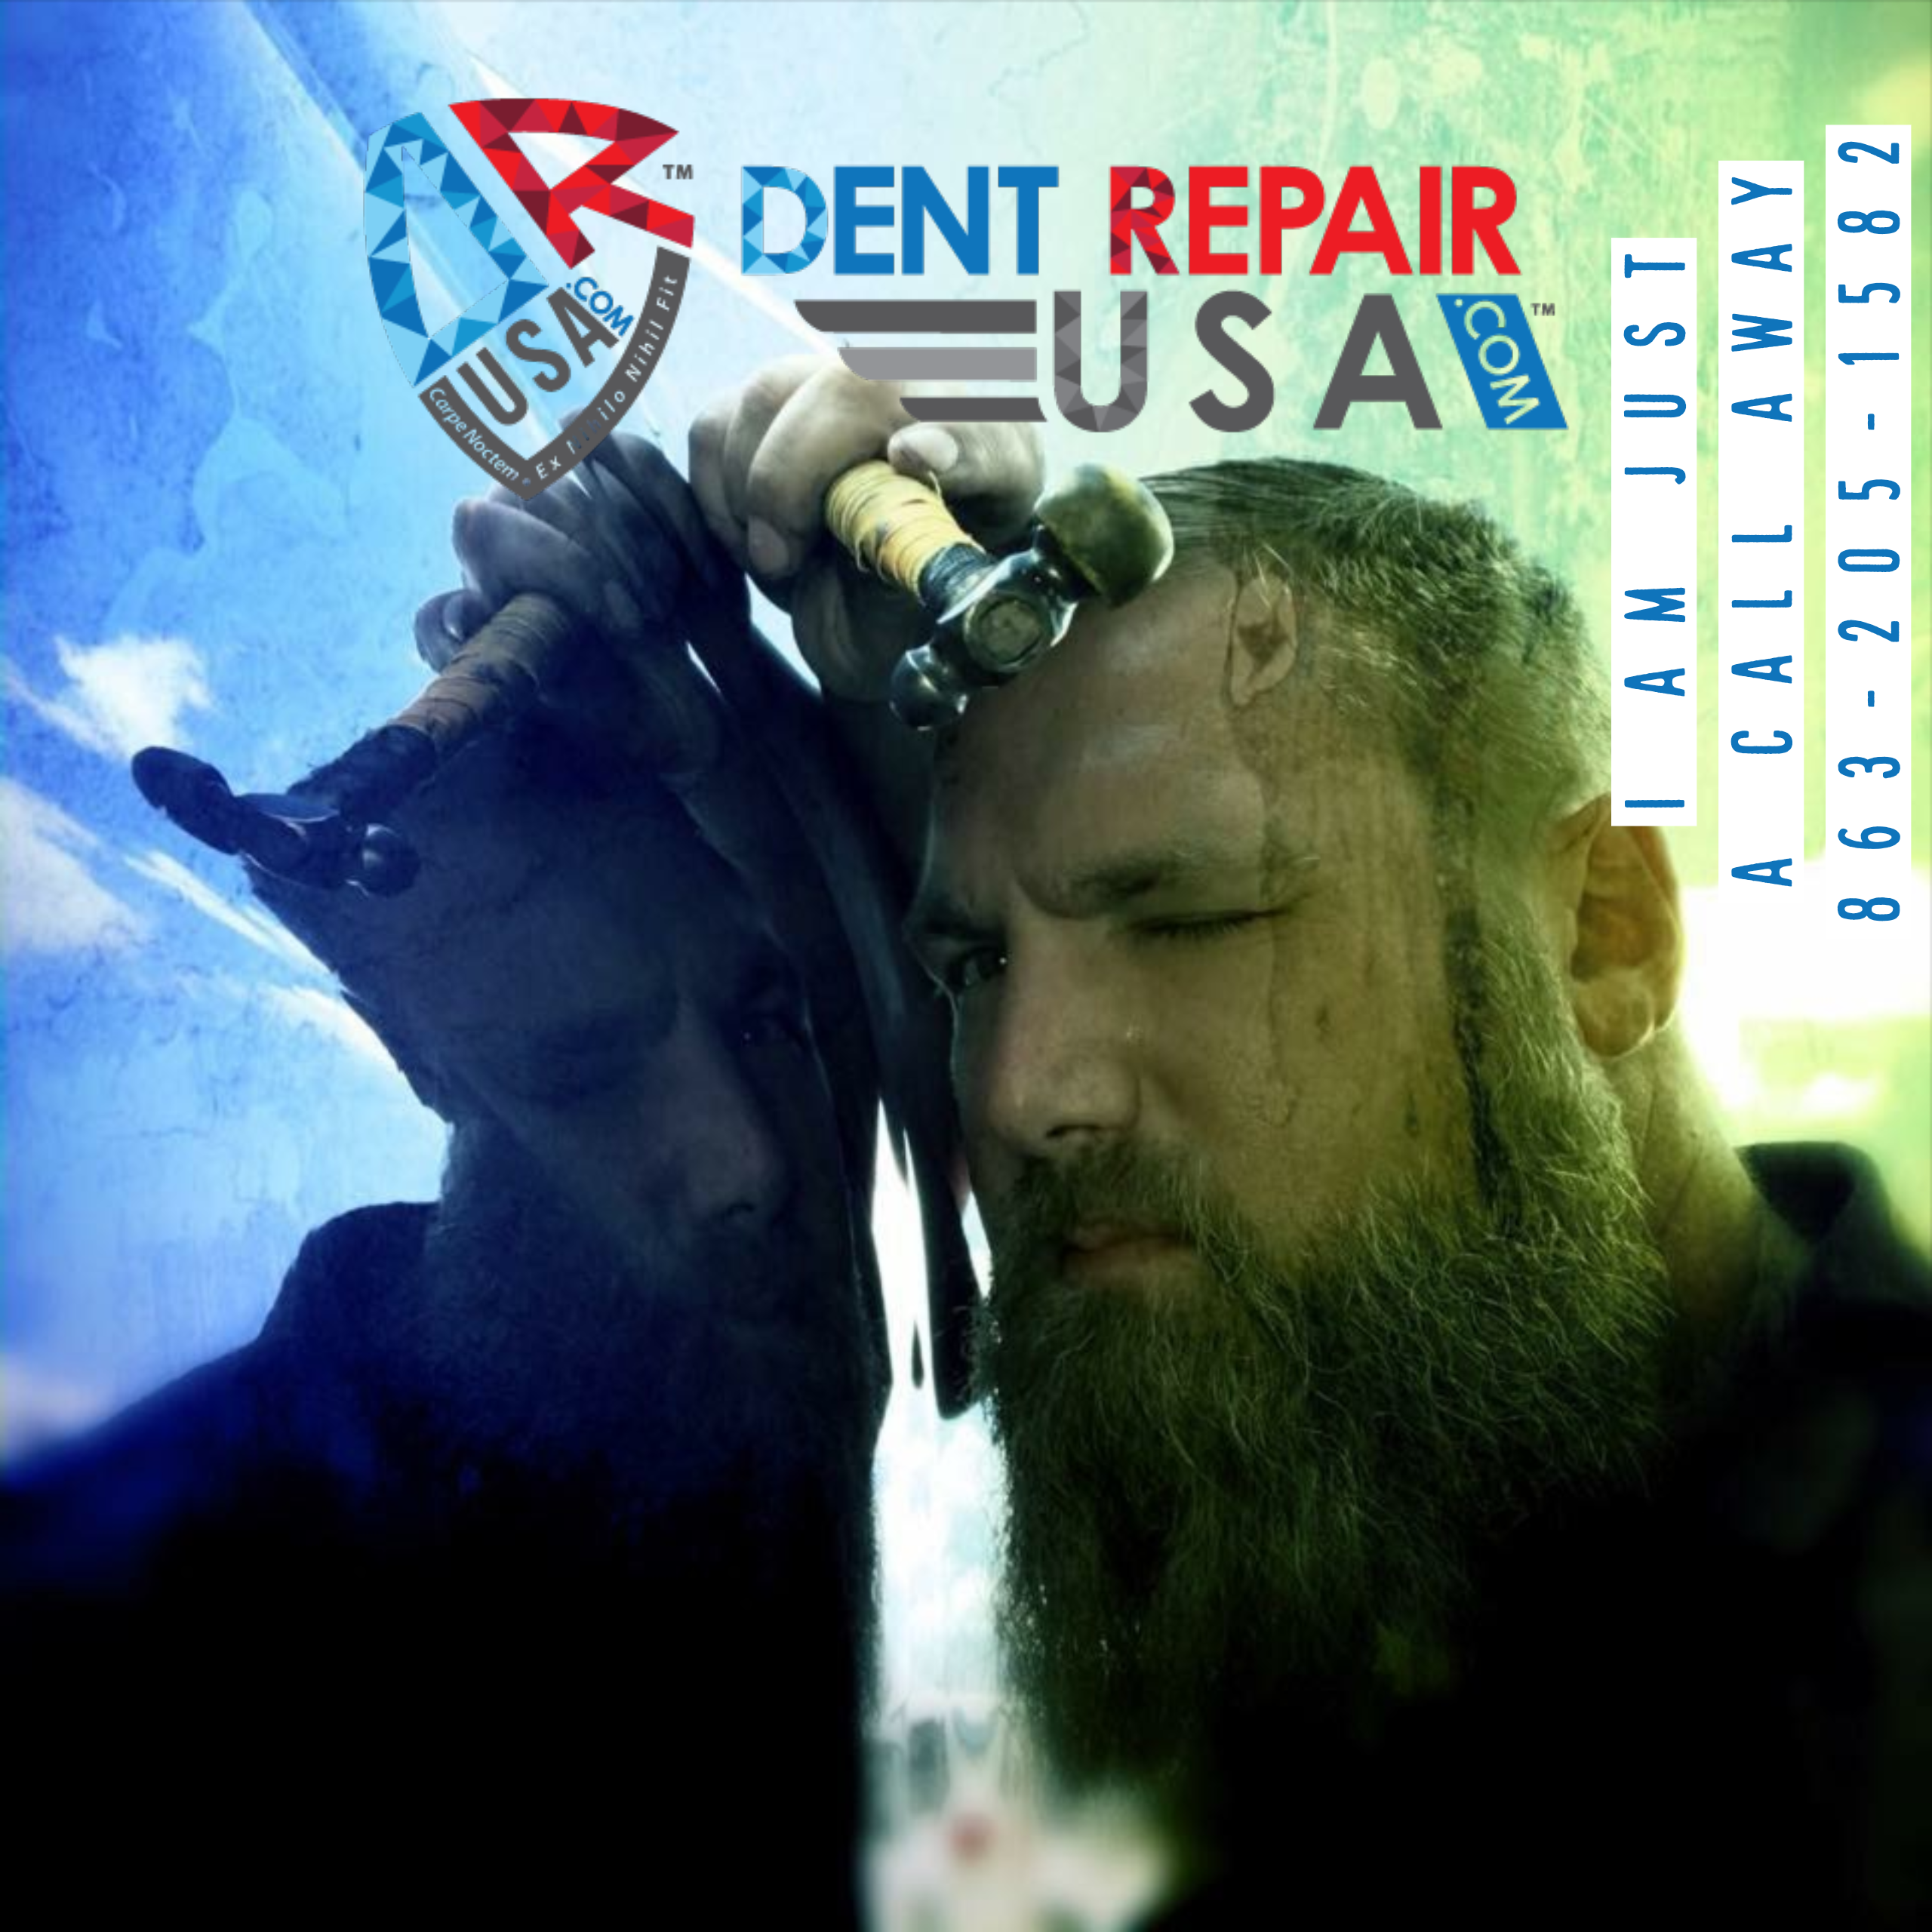 Dent Repair Technitian Working